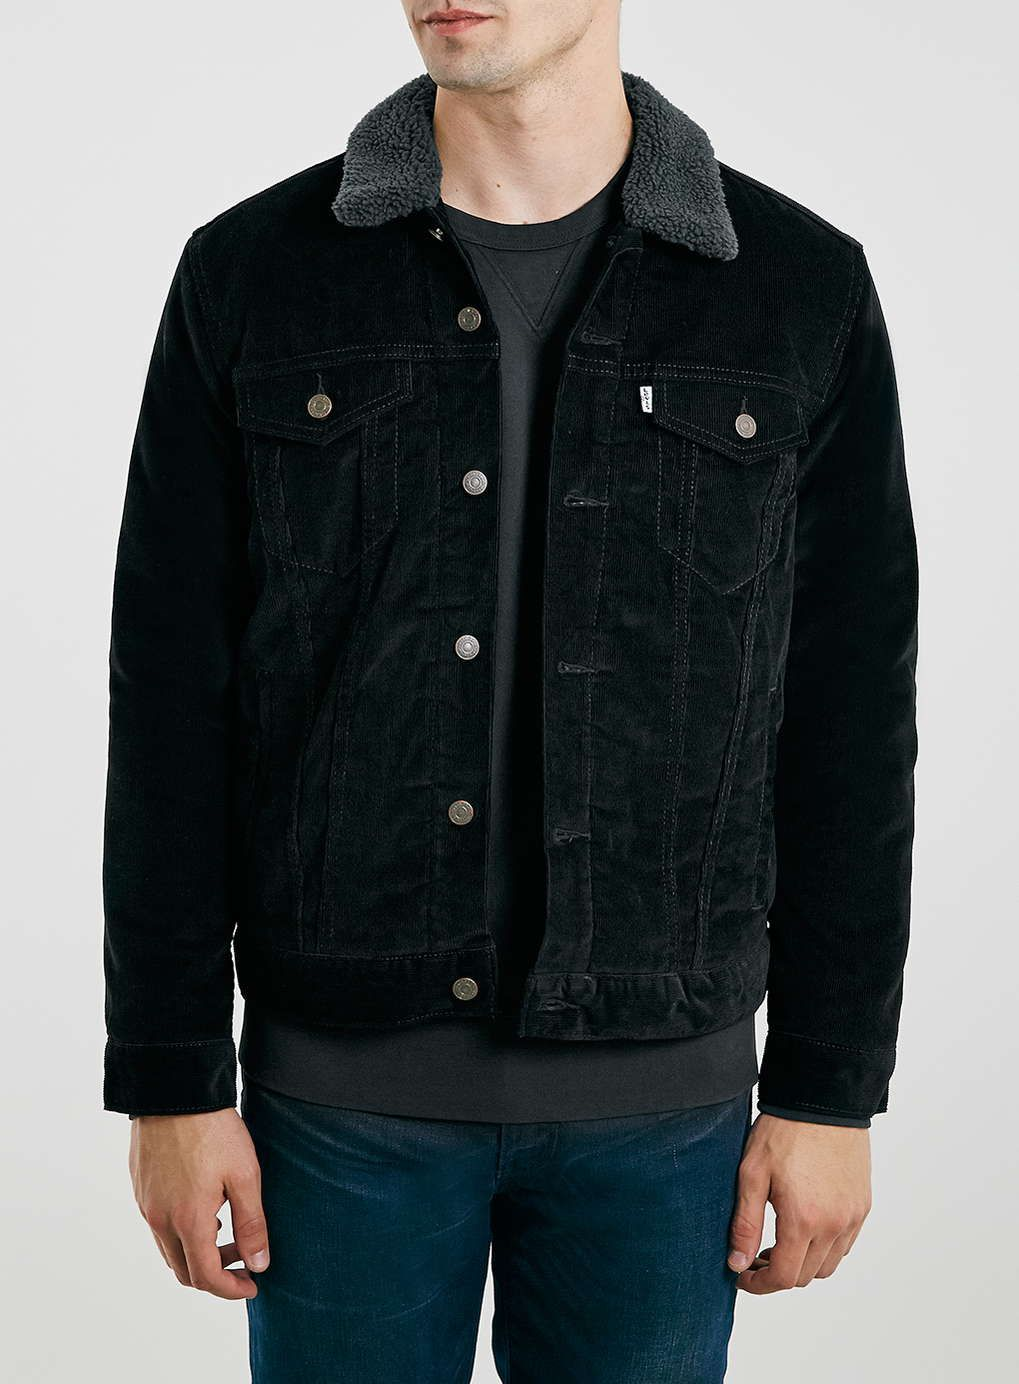 TOPMAN // LEVIS BLACK SHERPA JACKET Sherpa denim jacket